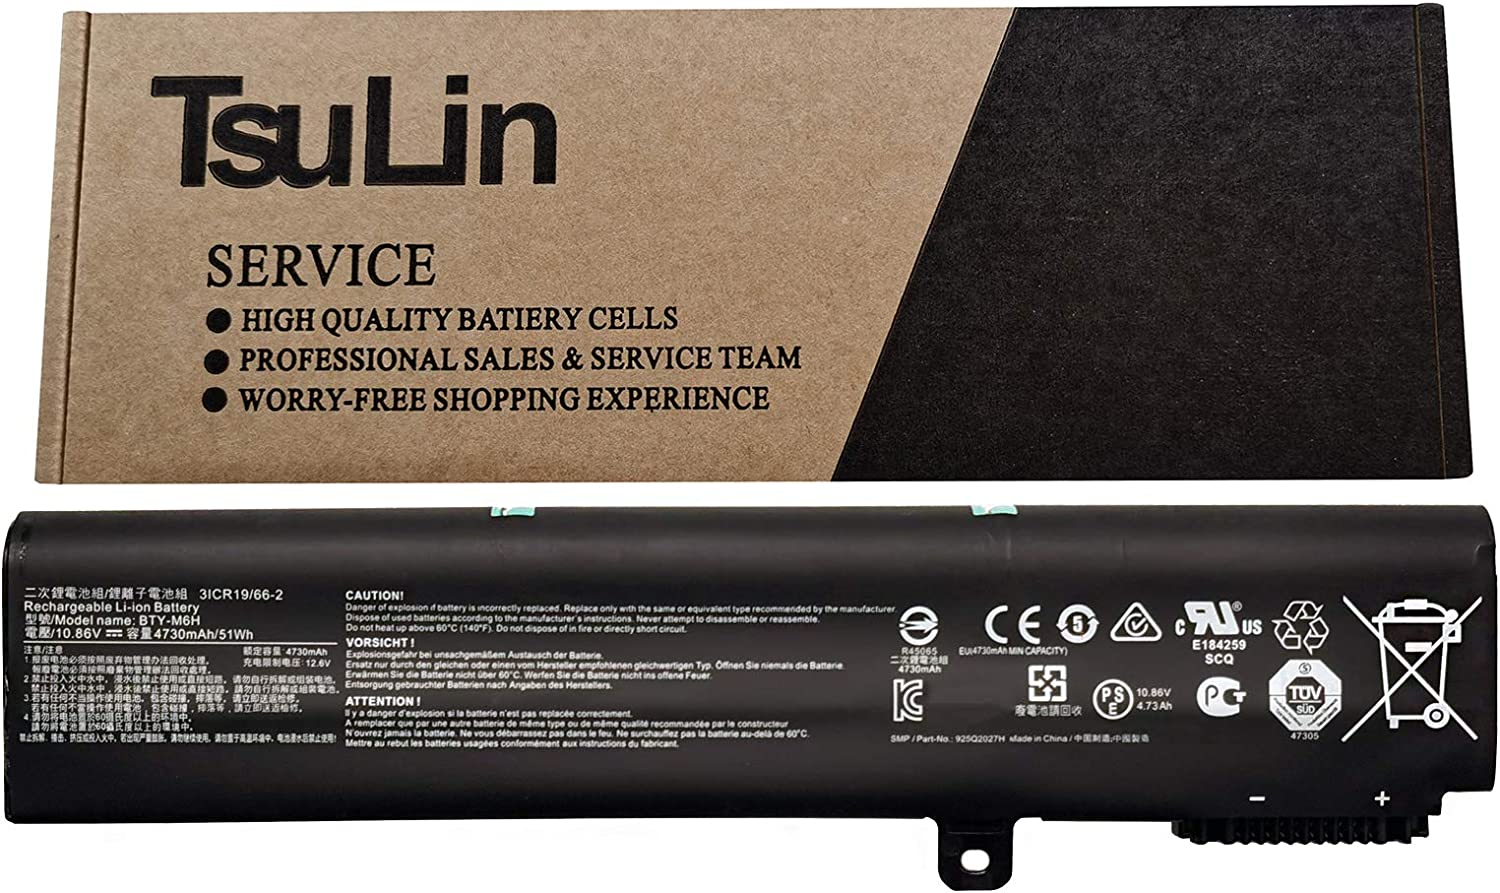 TsuLin BTY-M6H Laptop Battery Replacement for MSI GE62 GE72 GP62 GP72 GL62 GL72 MS-1792 MS-1795 MS-1796 MS-16J1 MS-16J2 MS-16J3 MS-16J4 MS-16J5 MS-16J6 Series Notebook 10.86V 51Wh 4730mAh